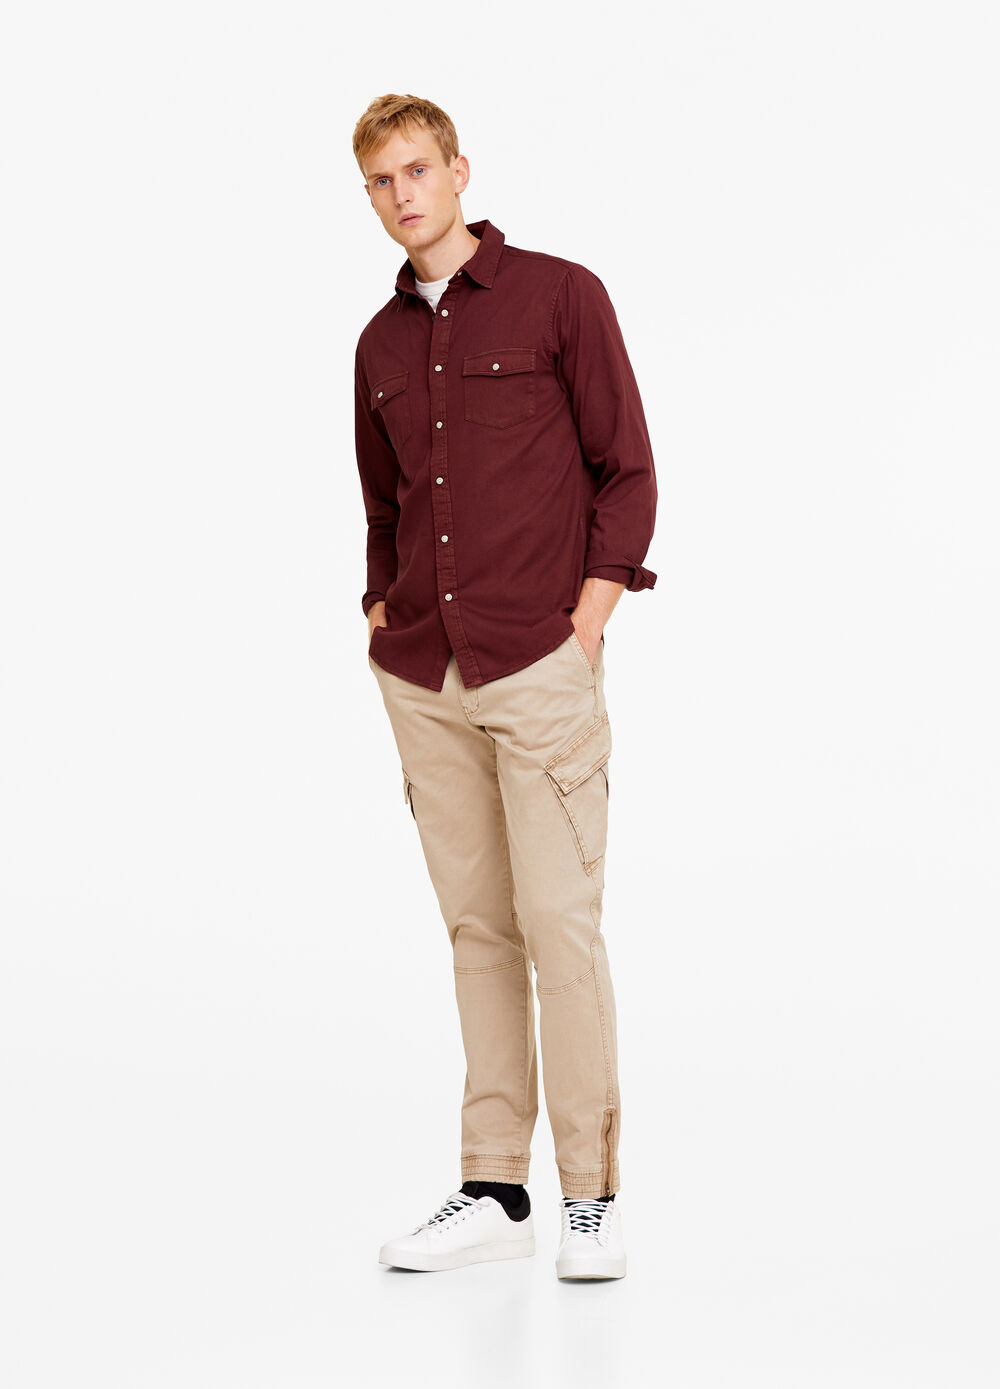 Casual shirt with snap buttons